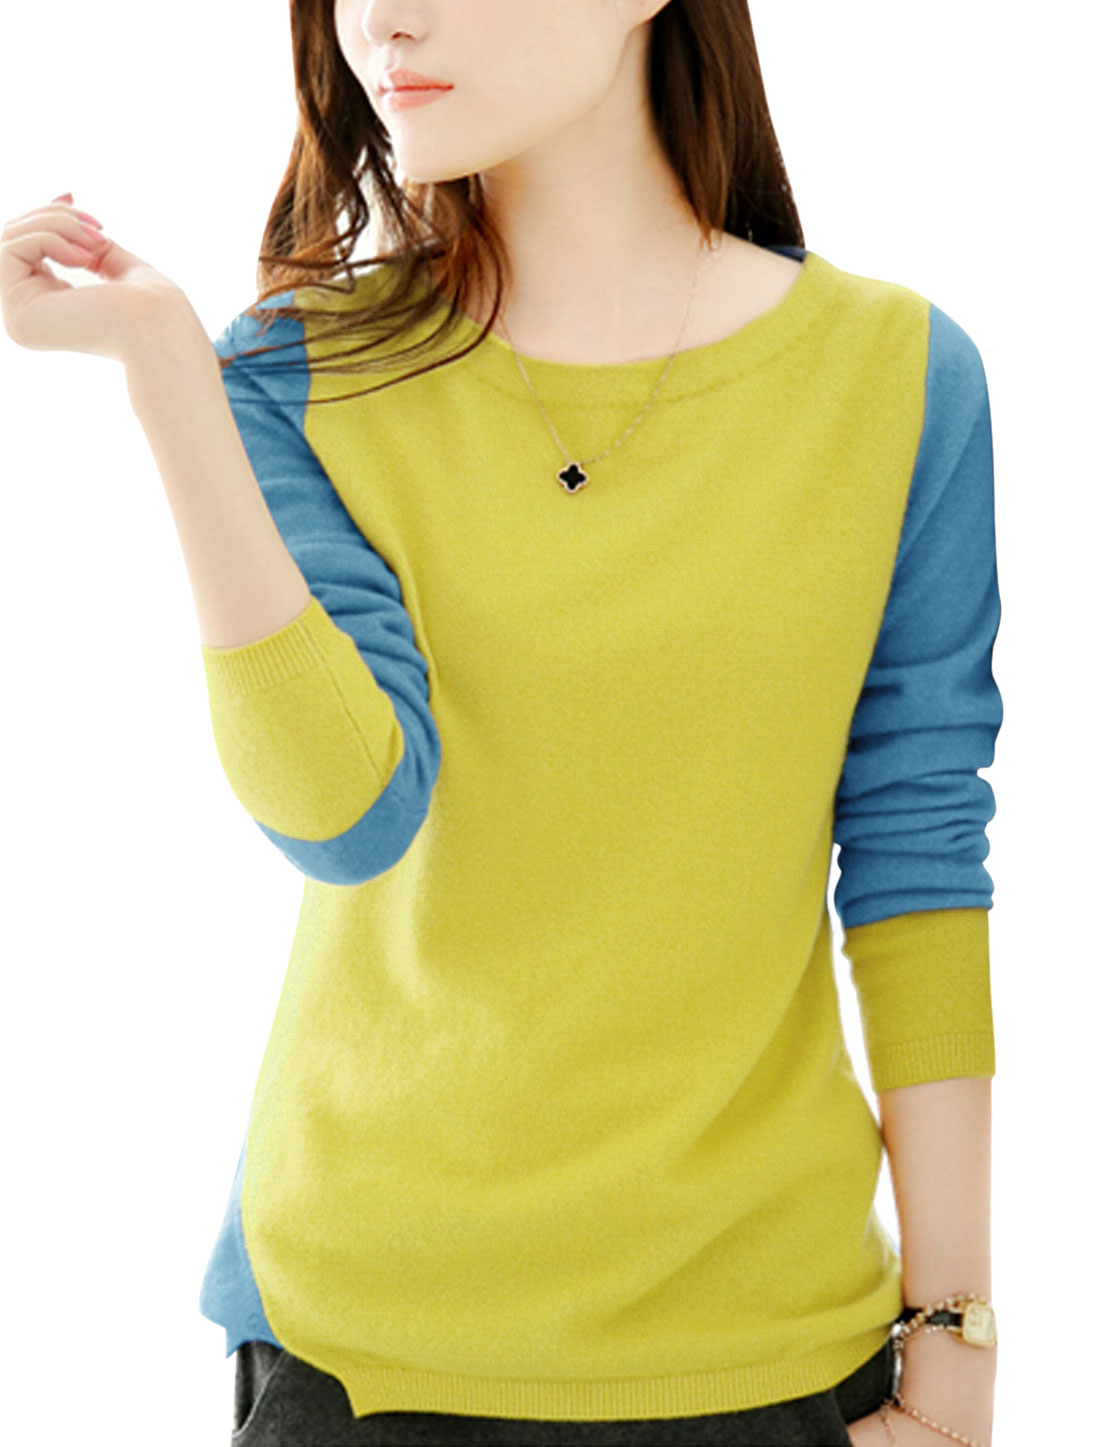 Lady Long Sleeve Color Block Casual Knit Shirt Yellow Light Blue S